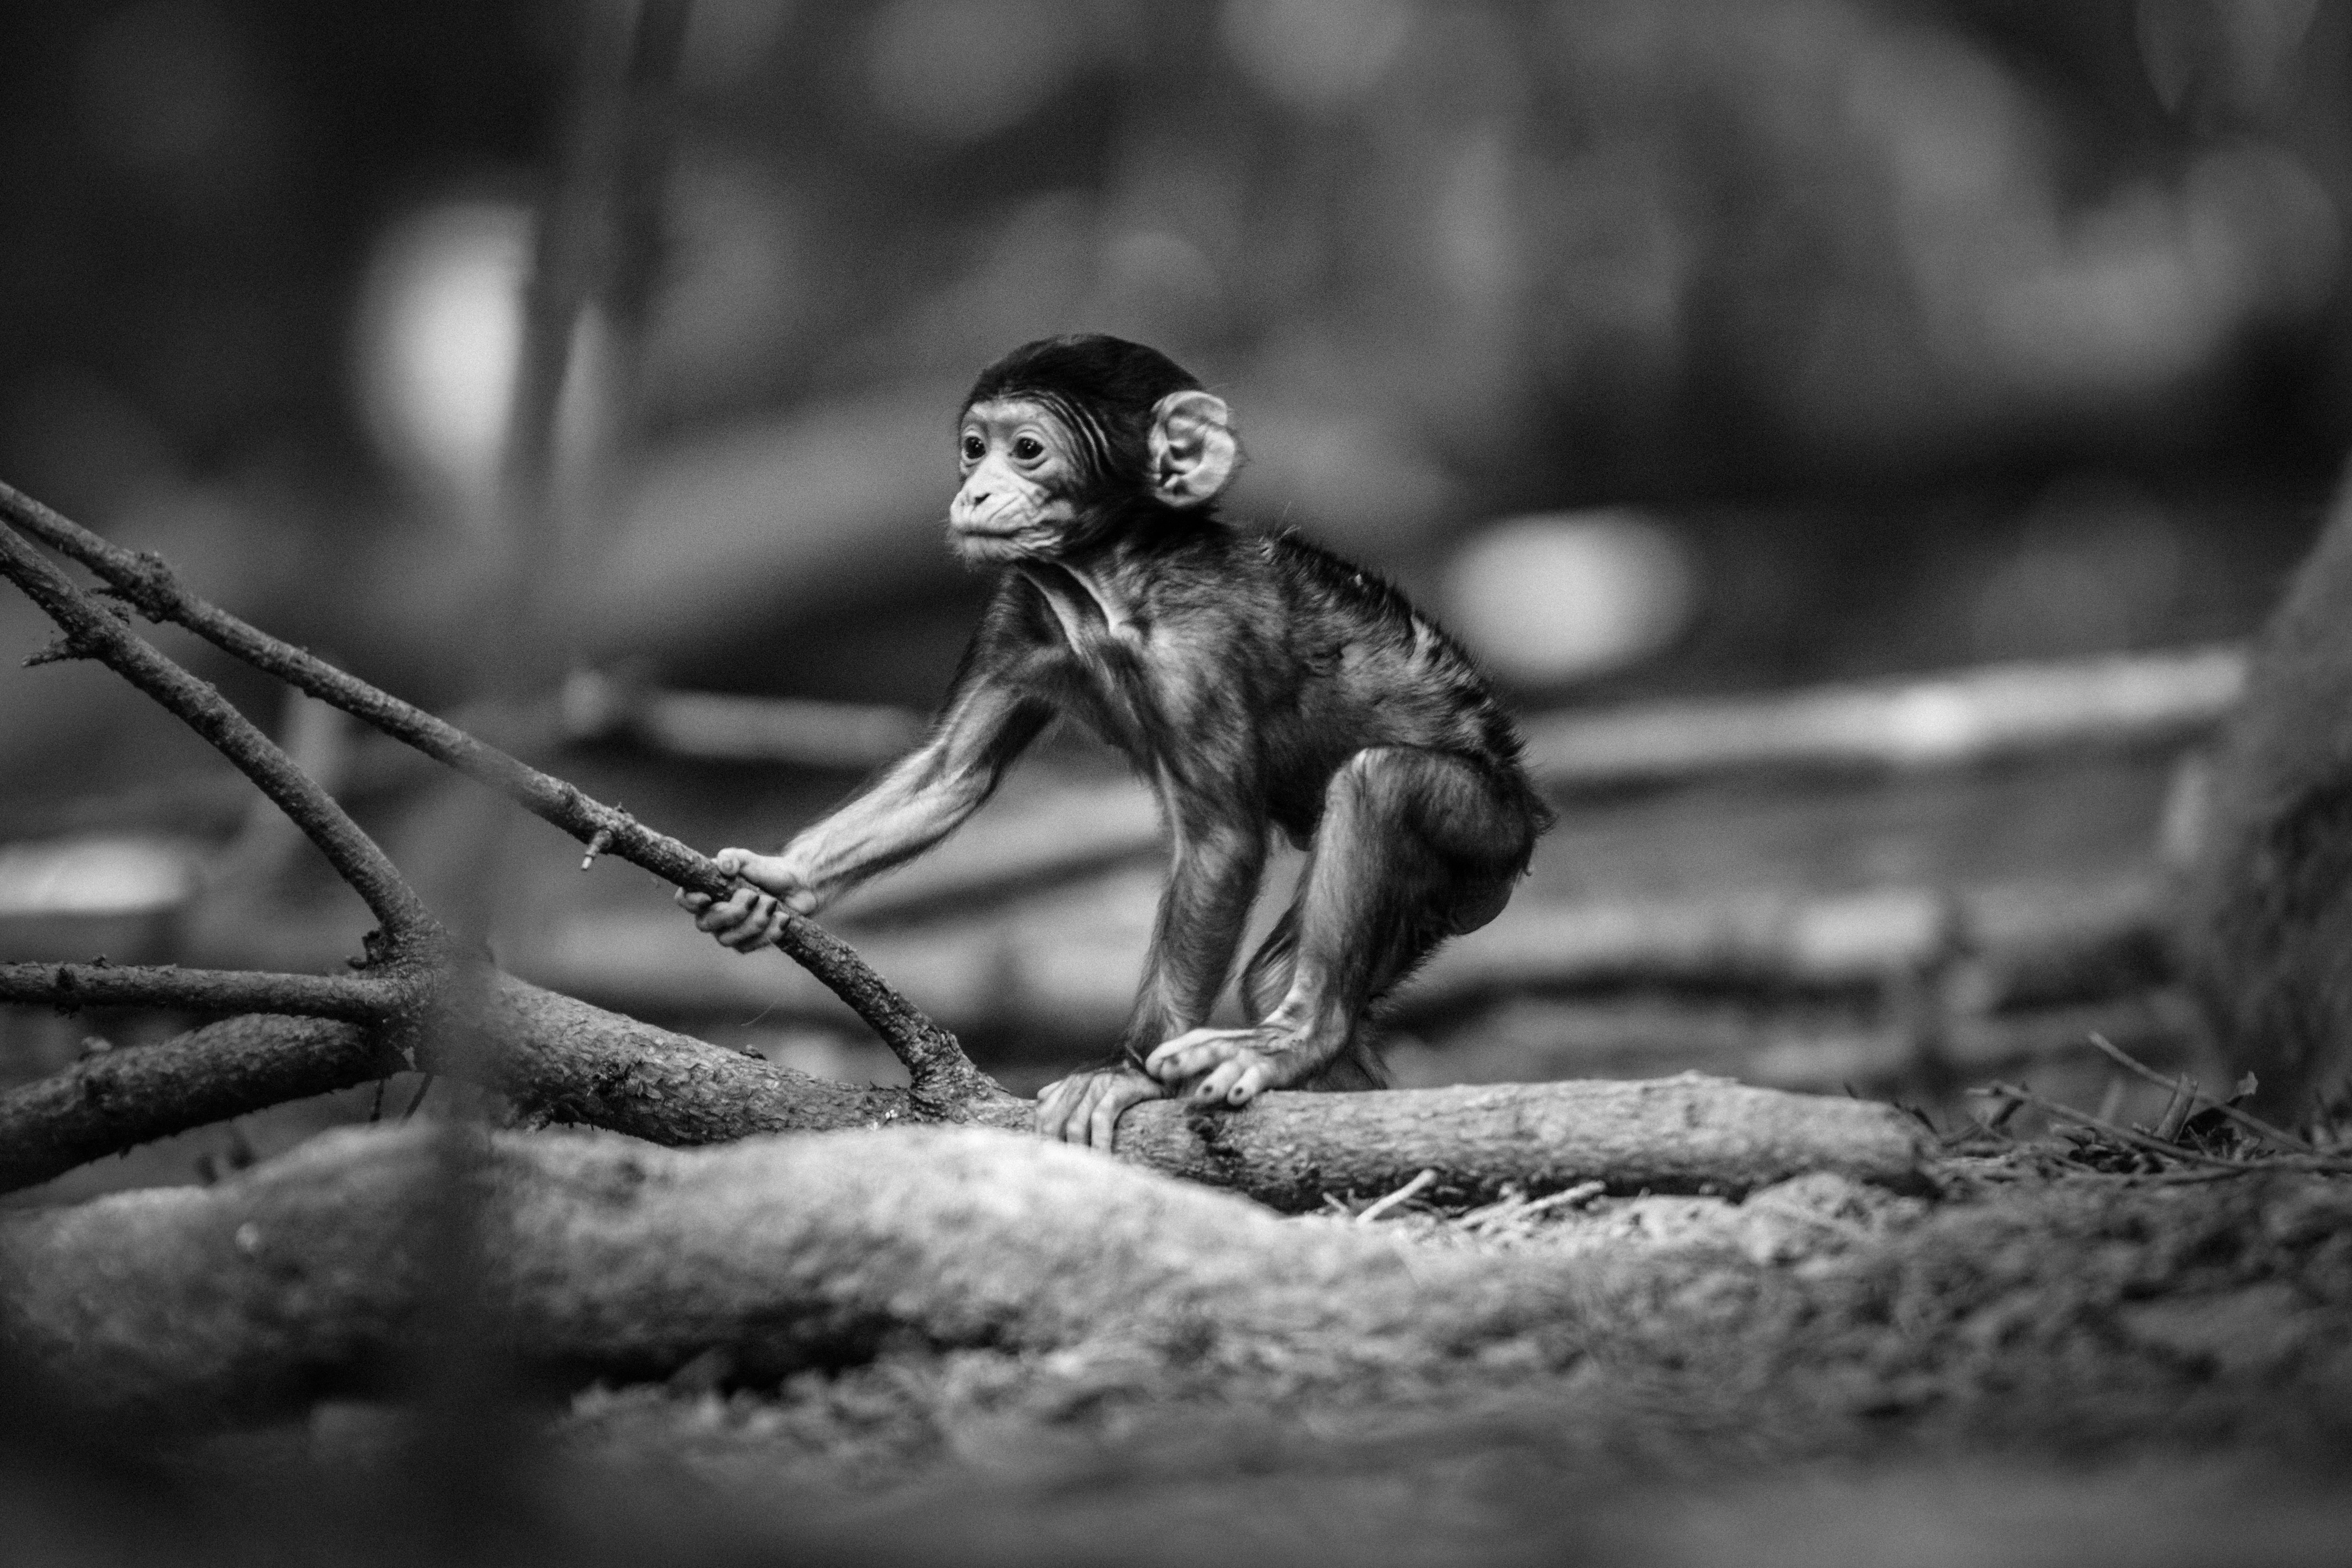 grayscale photography of monkey holding tree branch